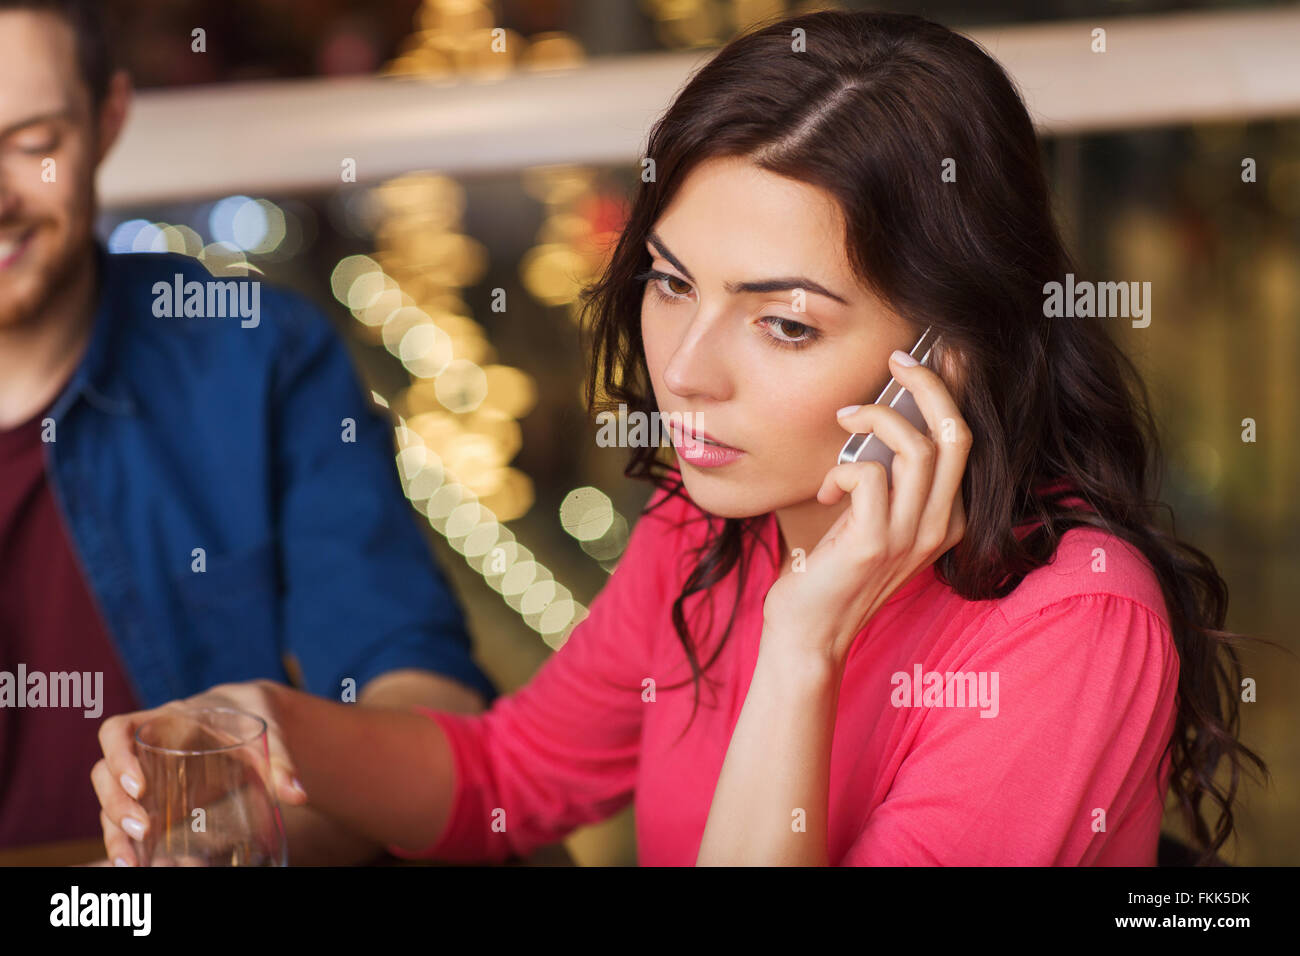 woman with smartphone and friends at restaurant - Stock Image